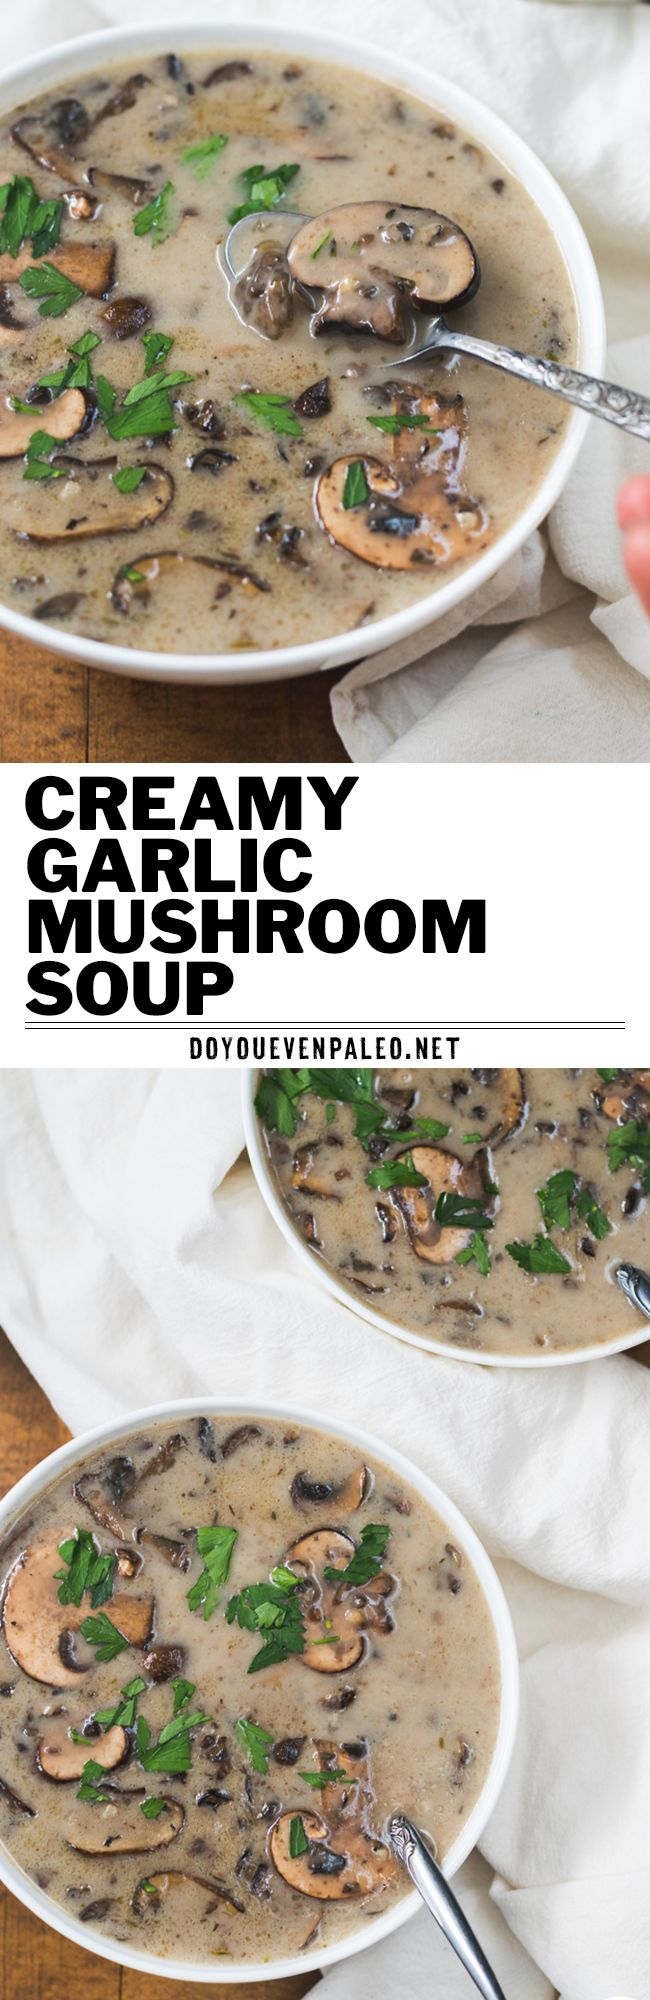 A dairy-free spin on classic mushroom soup. It's wholesome, rustic, and full. of. mushrooms! Paleo, gluten free, and Whole30. | DoYouEvenPaleo.net #paleo #glutenfree #dairyfree #whole30